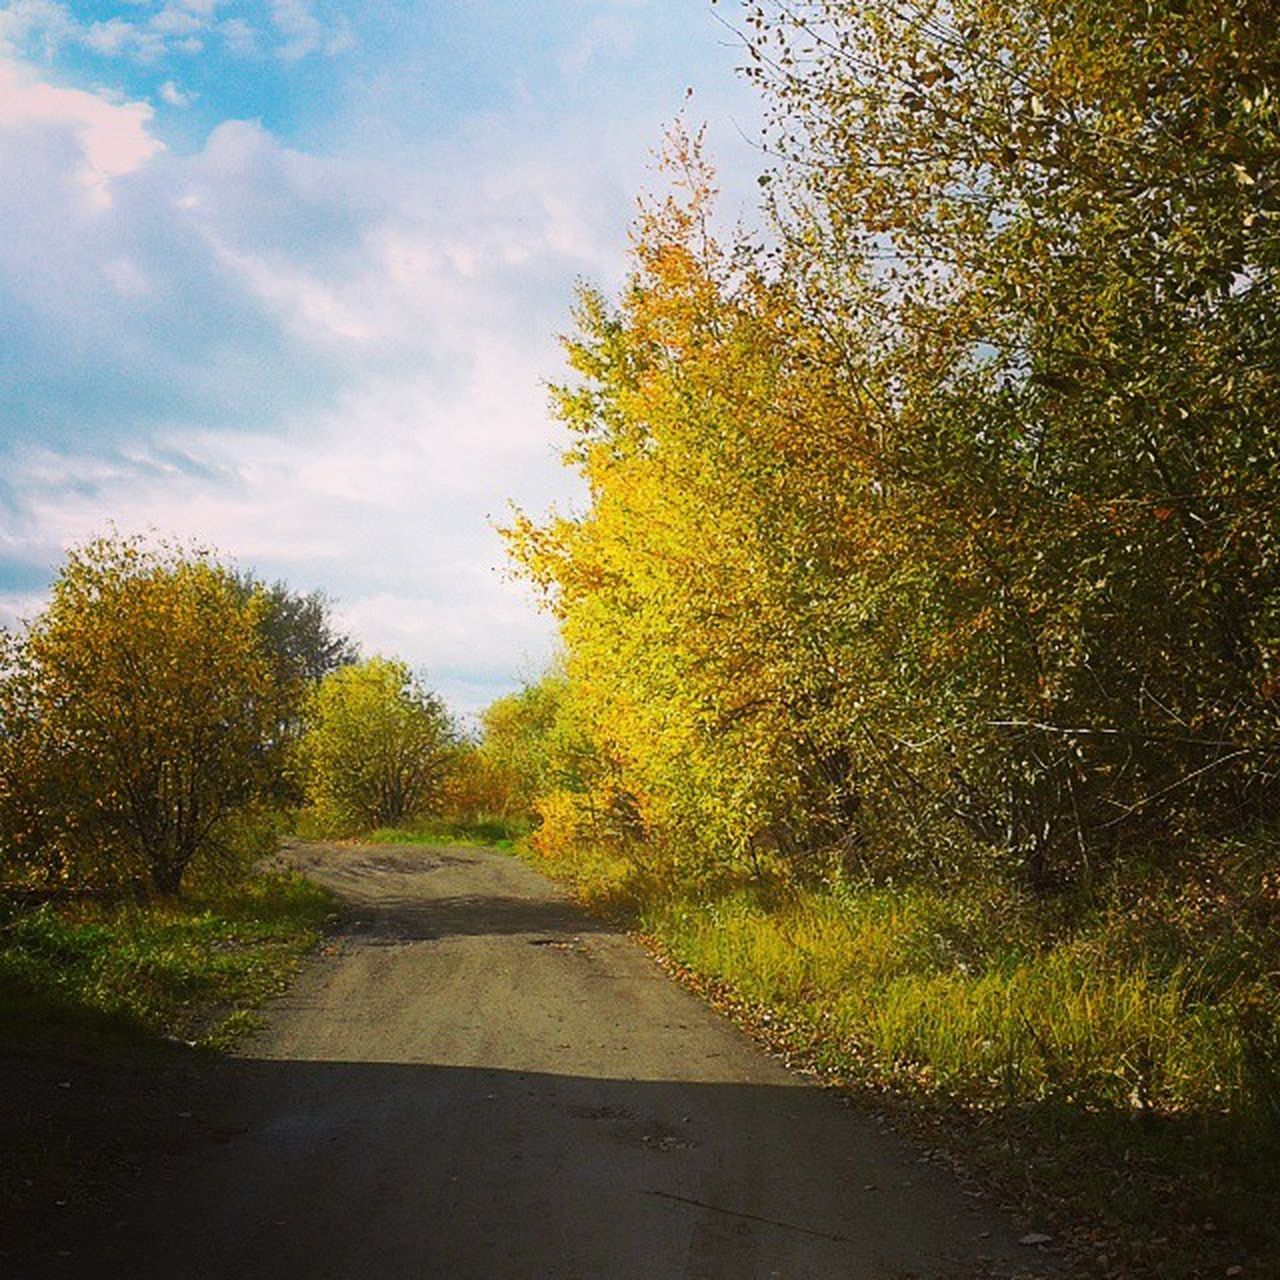 tree, autumn, nature, no people, the way forward, sky, tranquility, road, day, tranquil scene, growth, outdoors, scenics, beauty in nature, landscape, grass